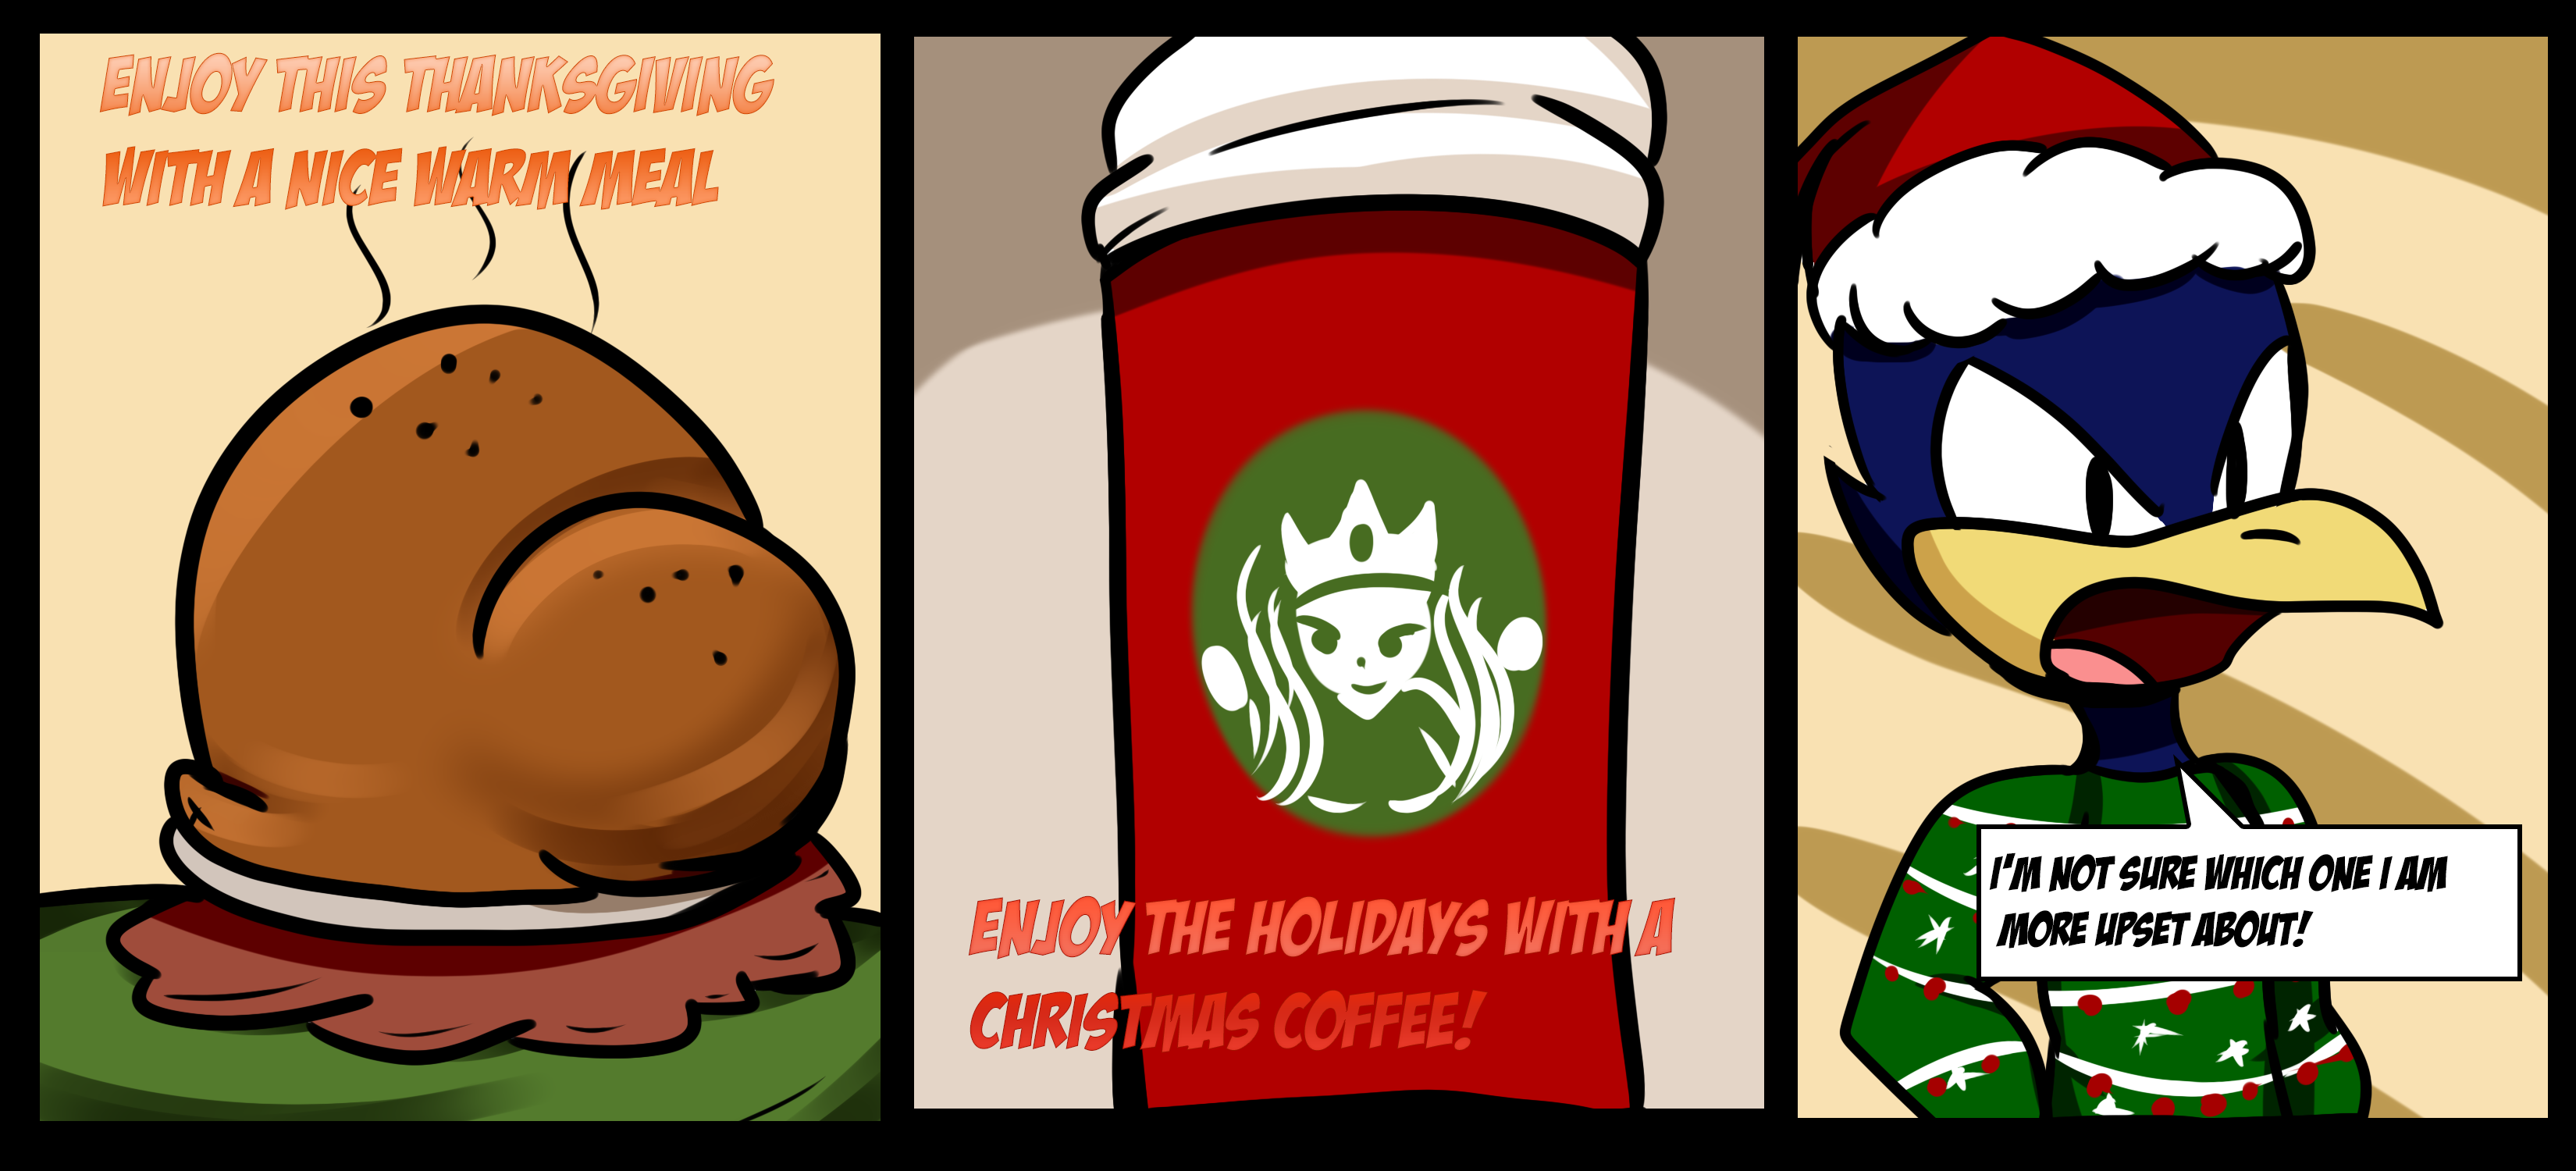 "Panel 1: Cartoon of a turkey with the text, ""Enjoy this Thanksgiving with a nice warm meal."" Panel 2: A cartoon of a well known coffee company's cup. Text, ""Enjoy the holidays with a Christmas Coffee!"" Panel 3: Lil' Hawkster says, ""I'm not sure which one I'm more upset about!"""